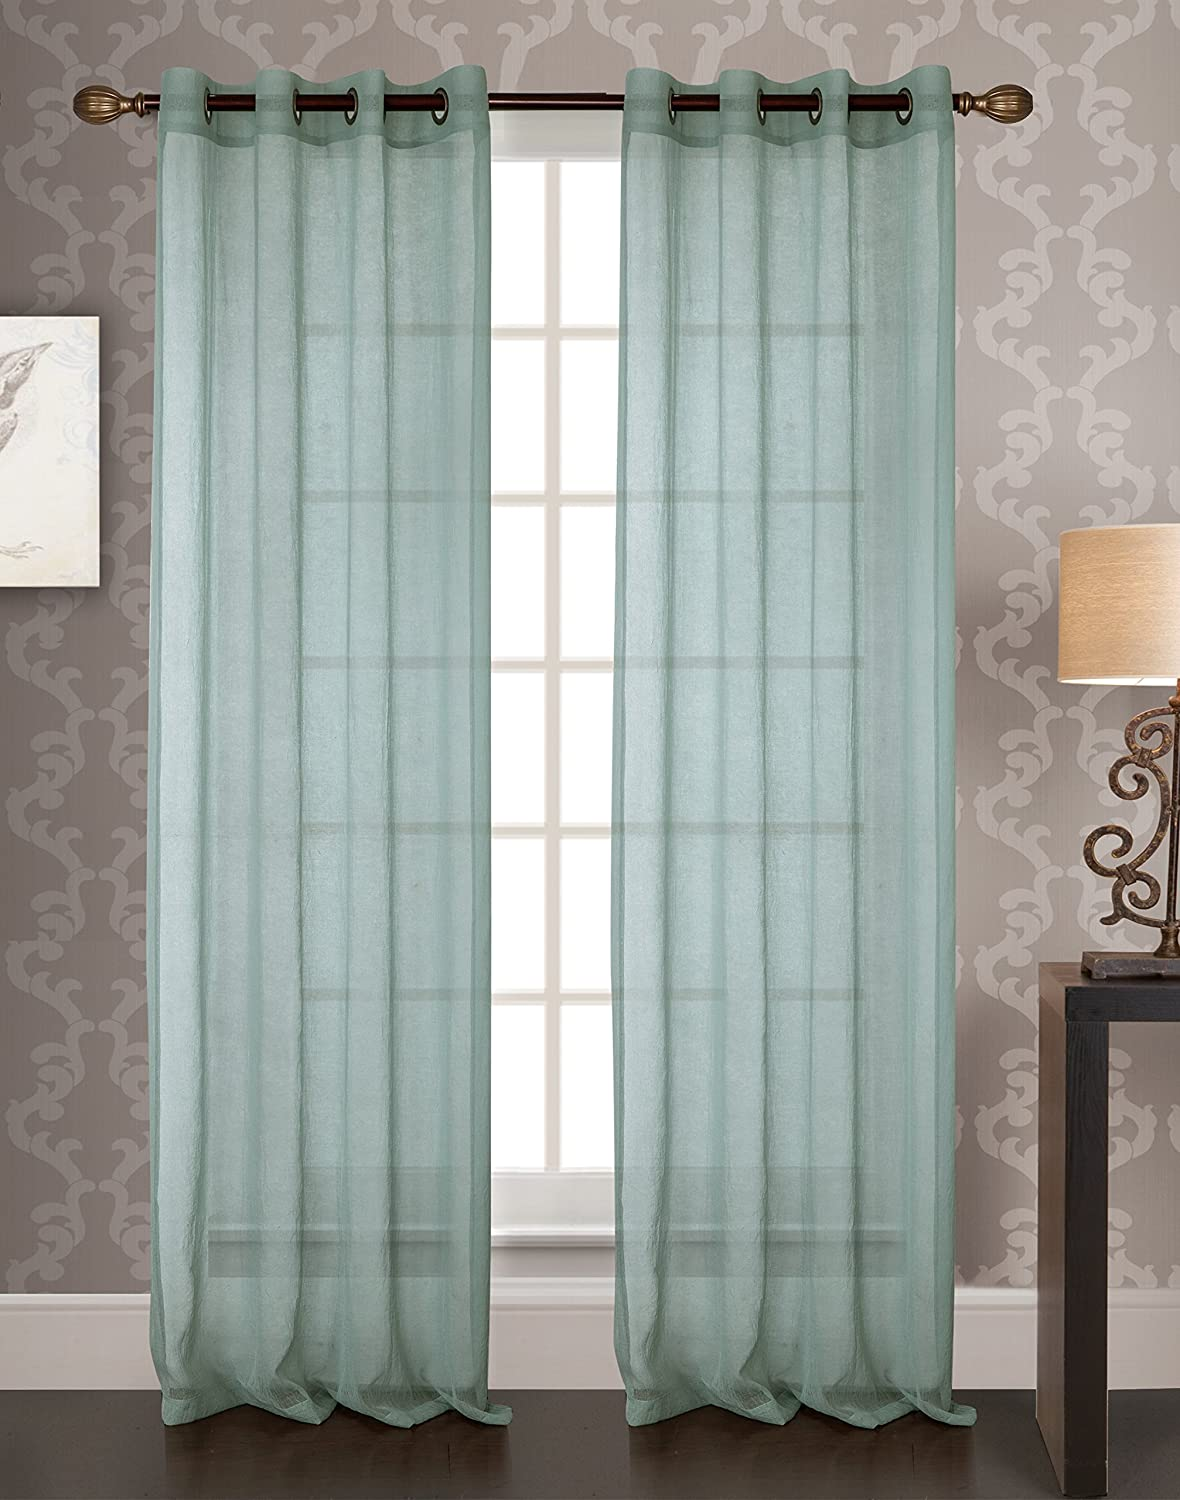 RT Designers Collection PNF07397 Fino Sheer 53x90 Grommet Curtain Panel, White Ramallah Trading Company Inc.